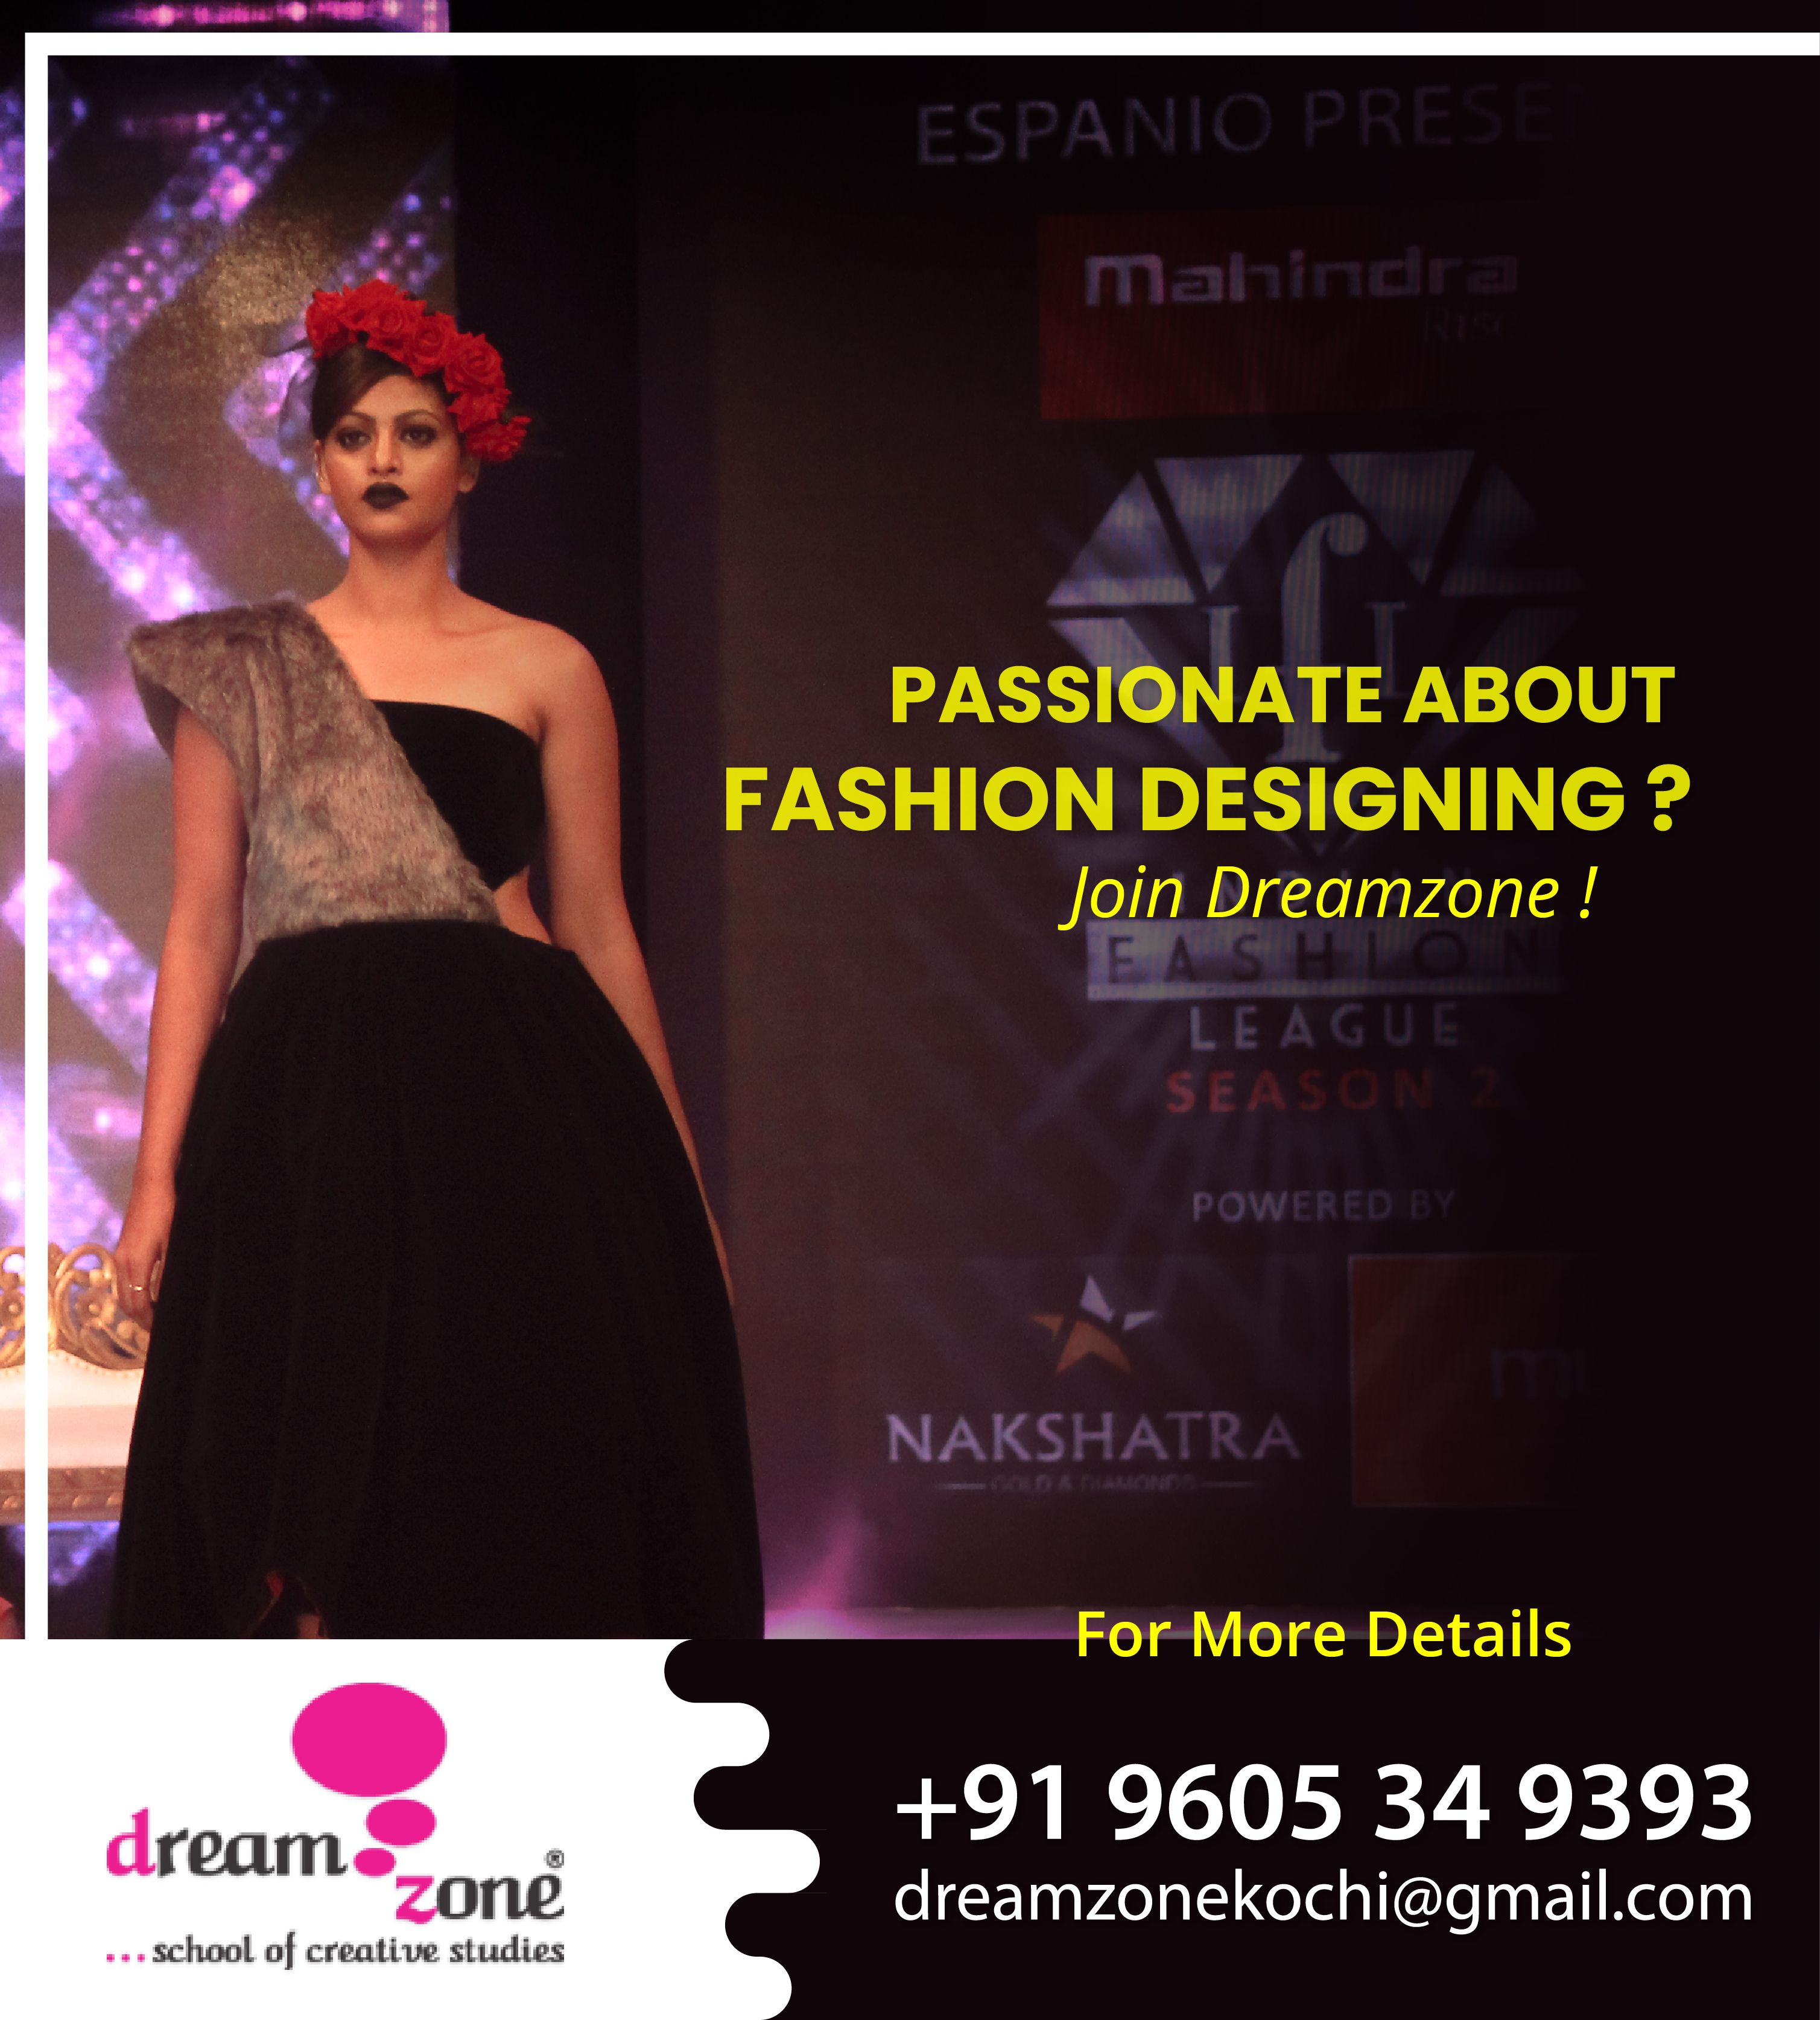 Placing Importance To The Teaching Methodology Of Experiential Learning Dreamzone Runs Scho Fashion Designing Institute Fashion Design Graphic Design Course